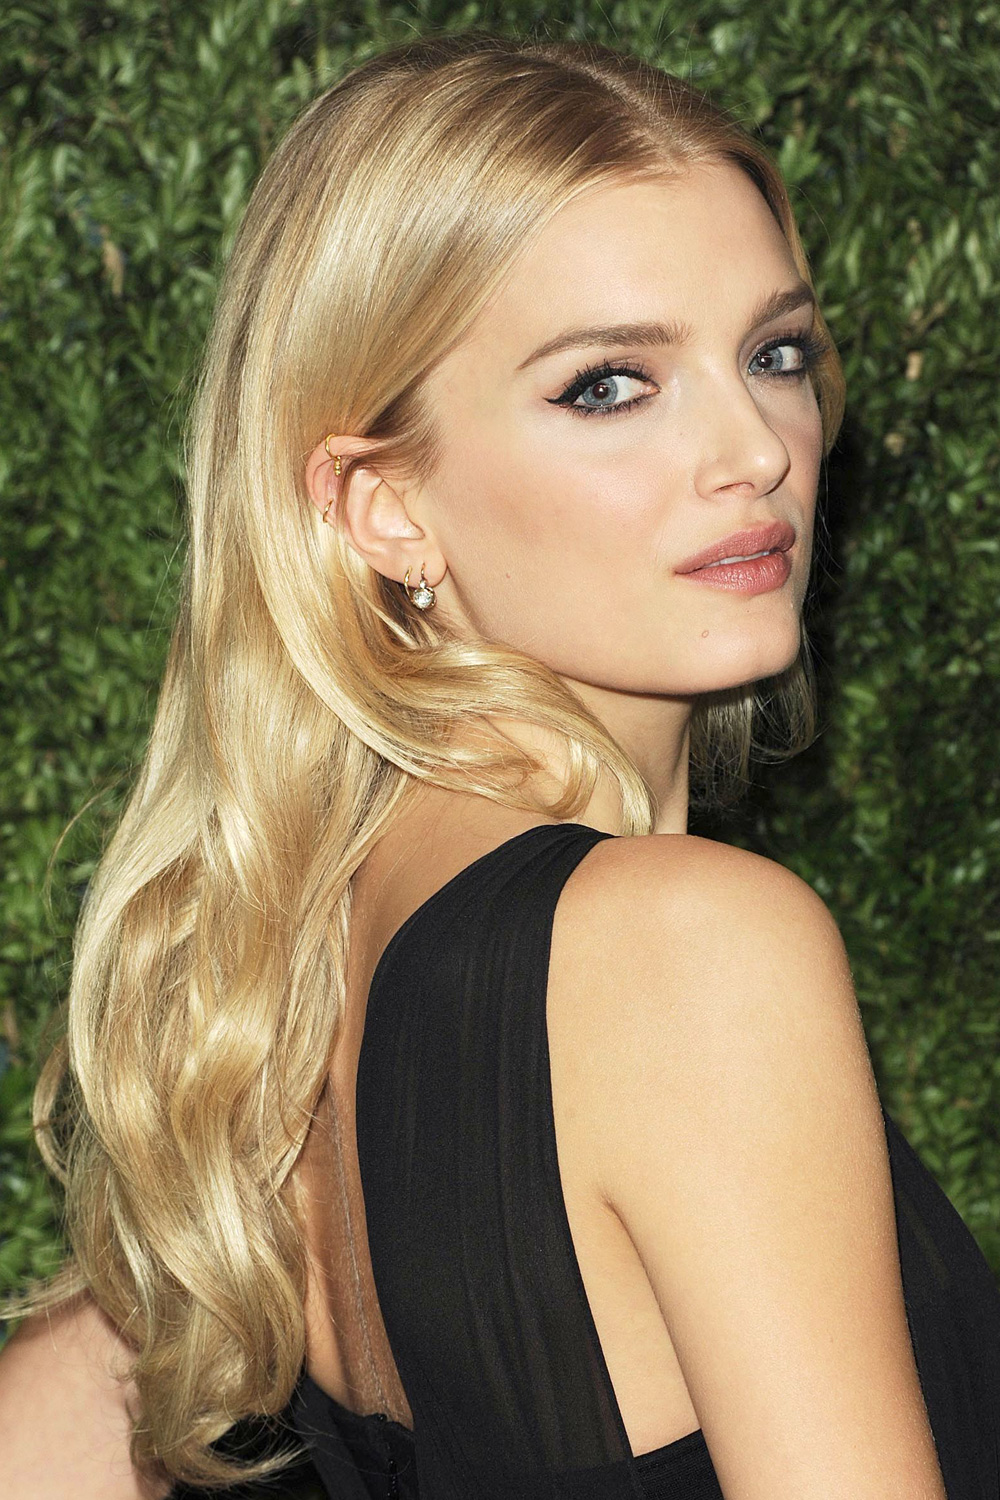 Incredible Blonde Hairstyles The Marie Claire Guide To Getting It Just Right Hairstyles For Women Draintrainus